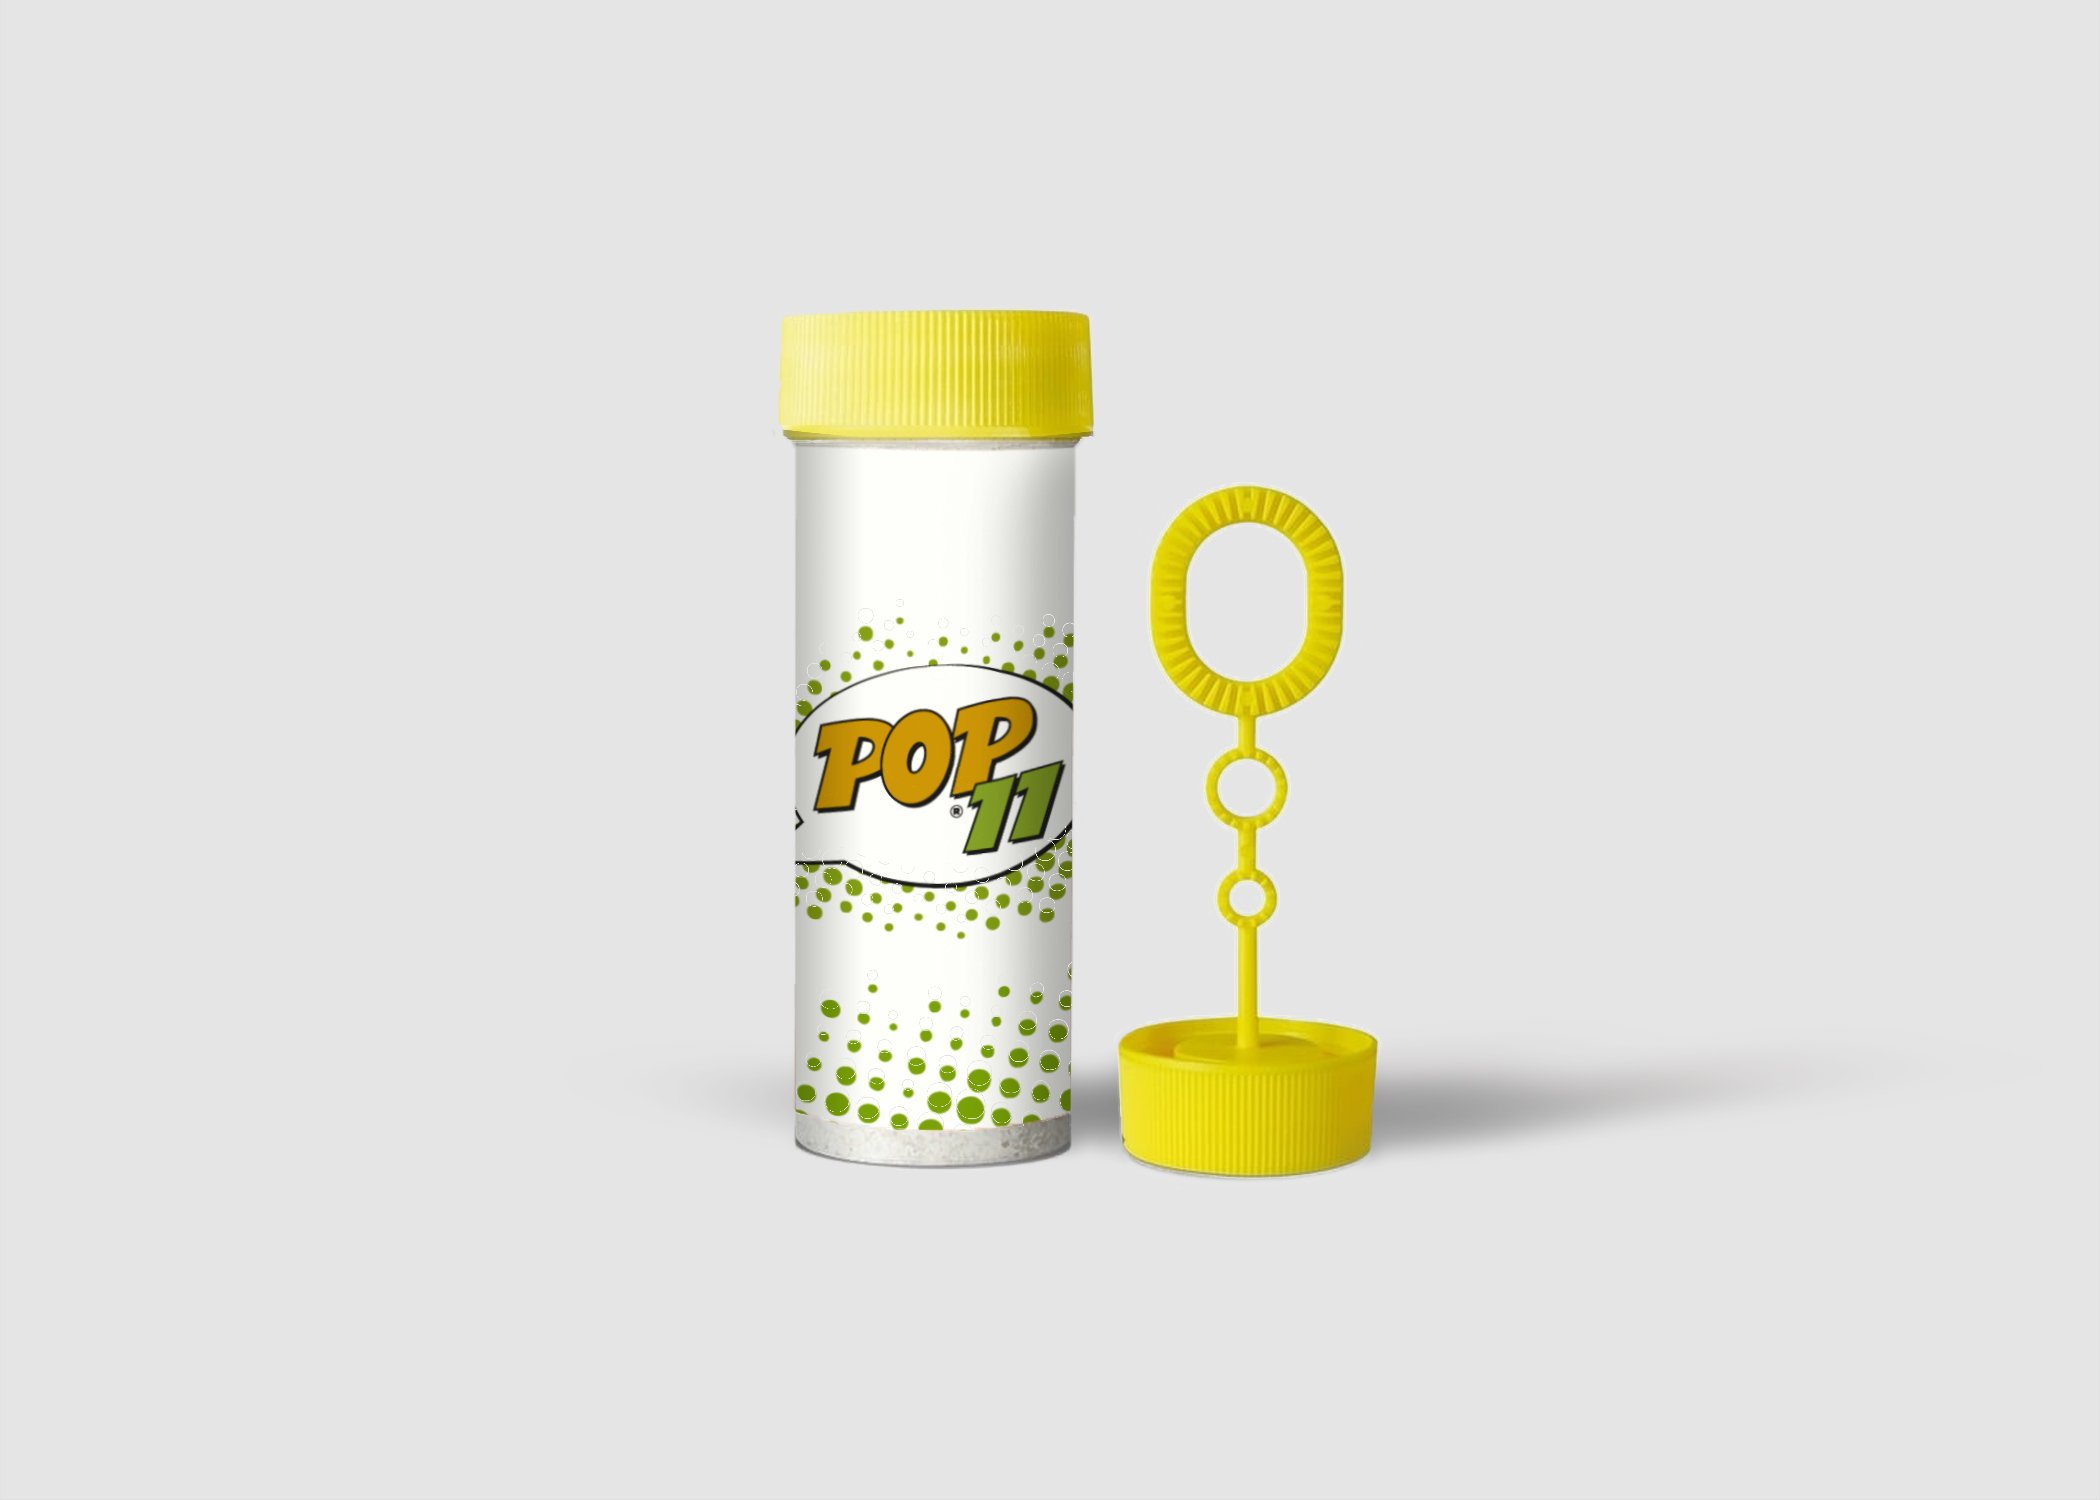 05 Pop11 Digital Prints Stickers Soap Bubbles Bottle